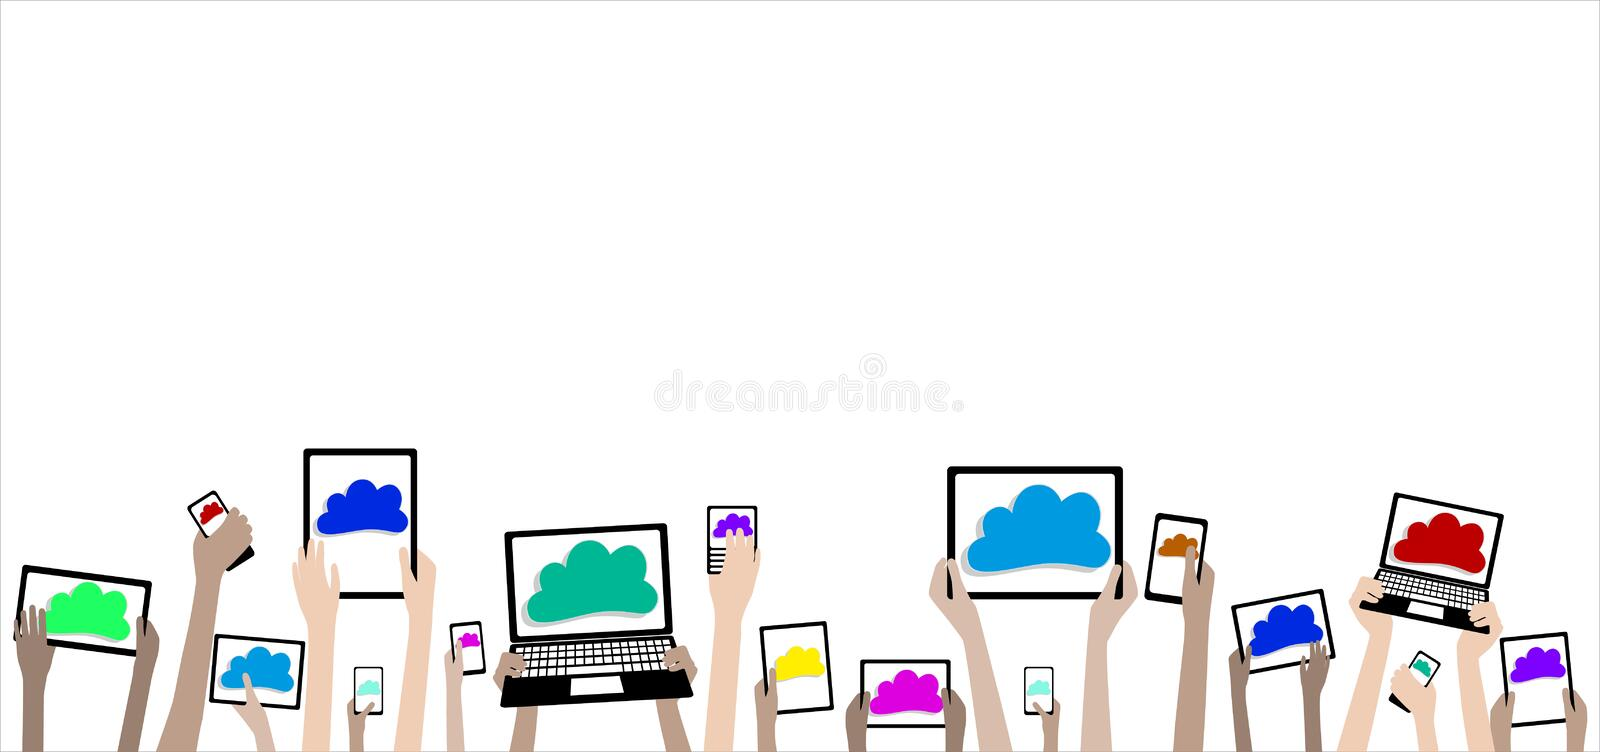 BYOD Children Hands with Computers and Clouds Bann. BYOD Bring Your Own Device Concept - Children Hands with Computers and Clouds Banner Grouped and layered EPS8 vector illustration